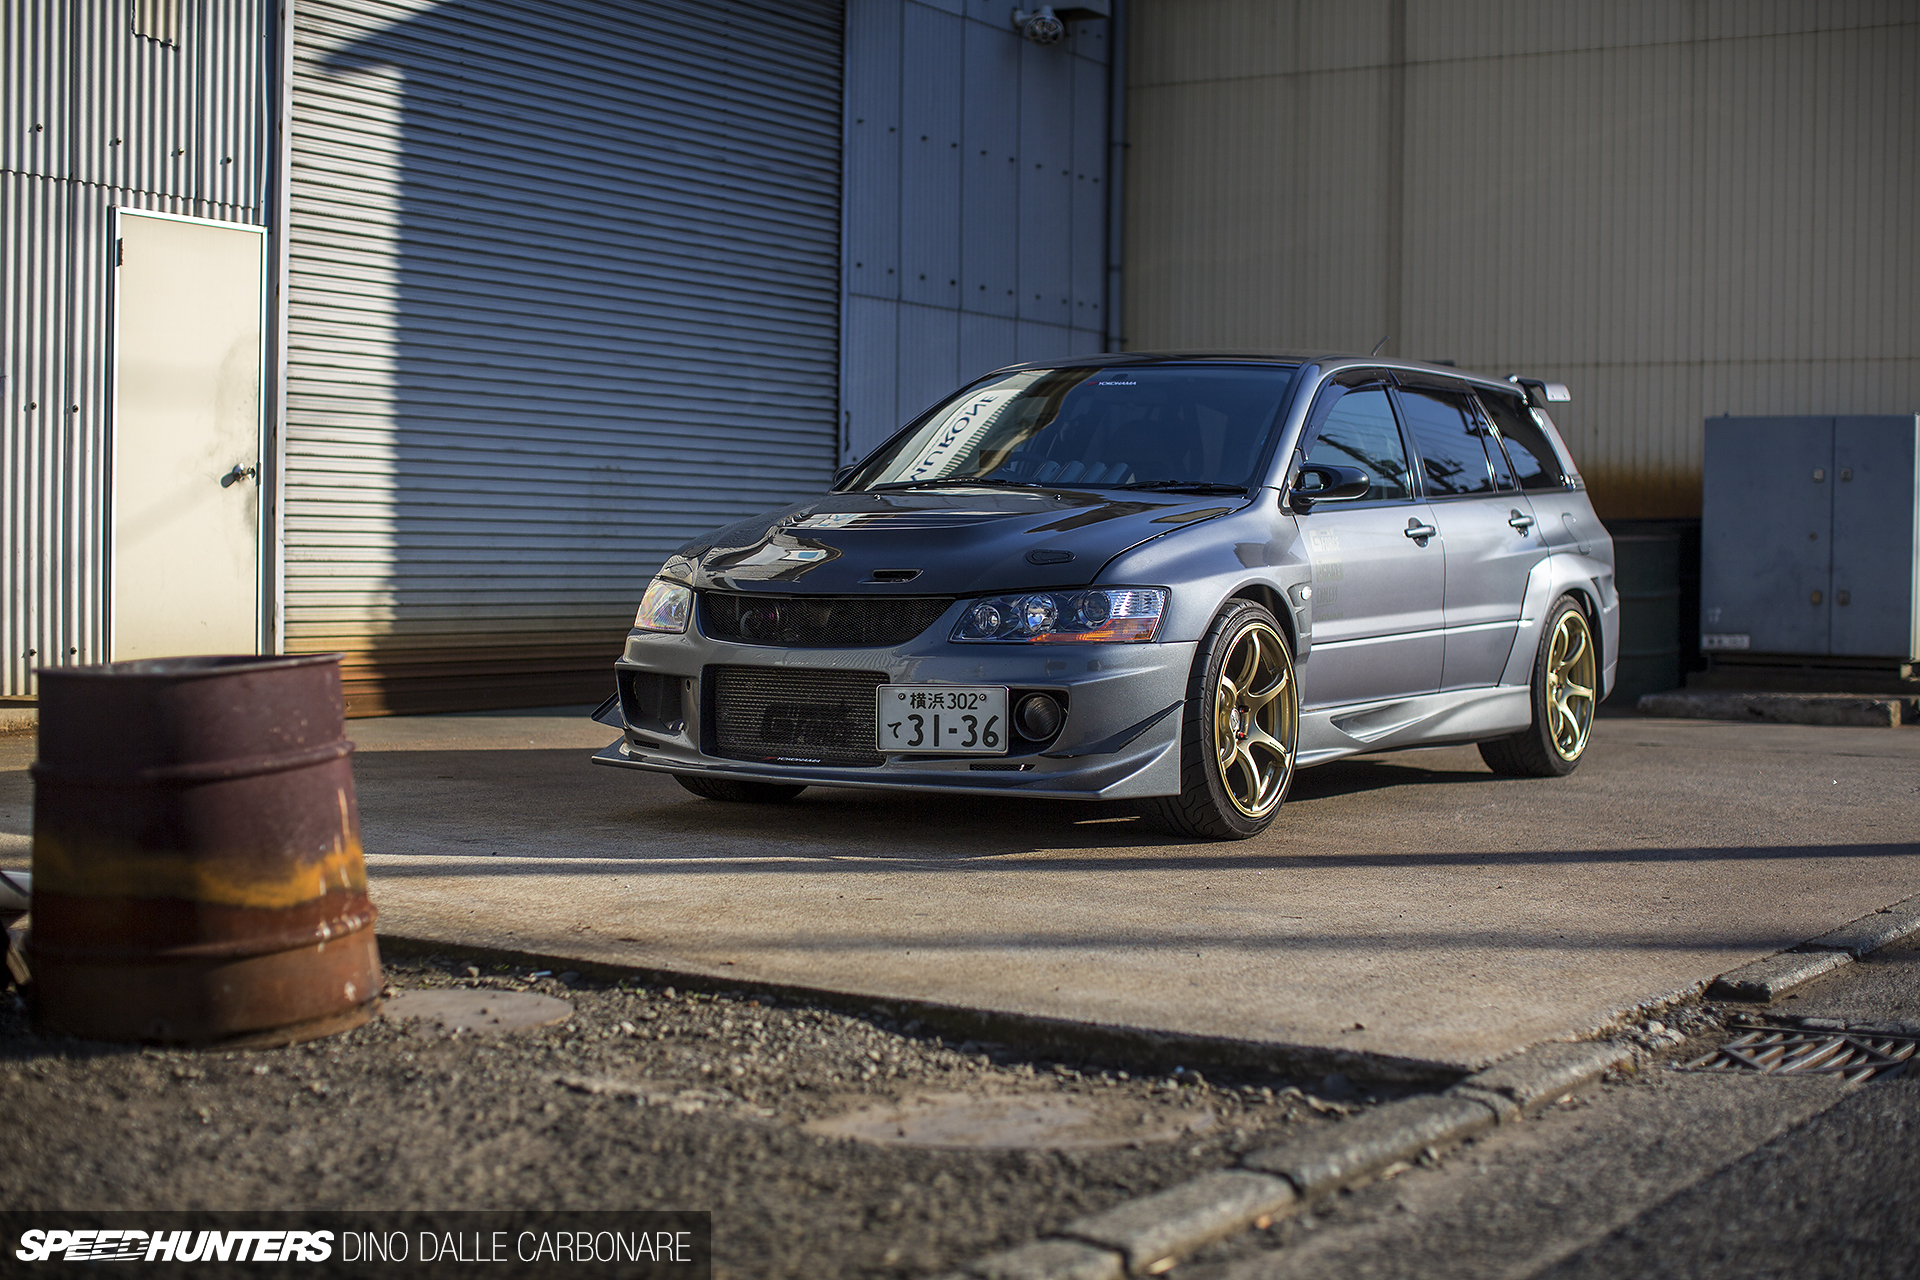 The Wangan Wagon Speedhunters